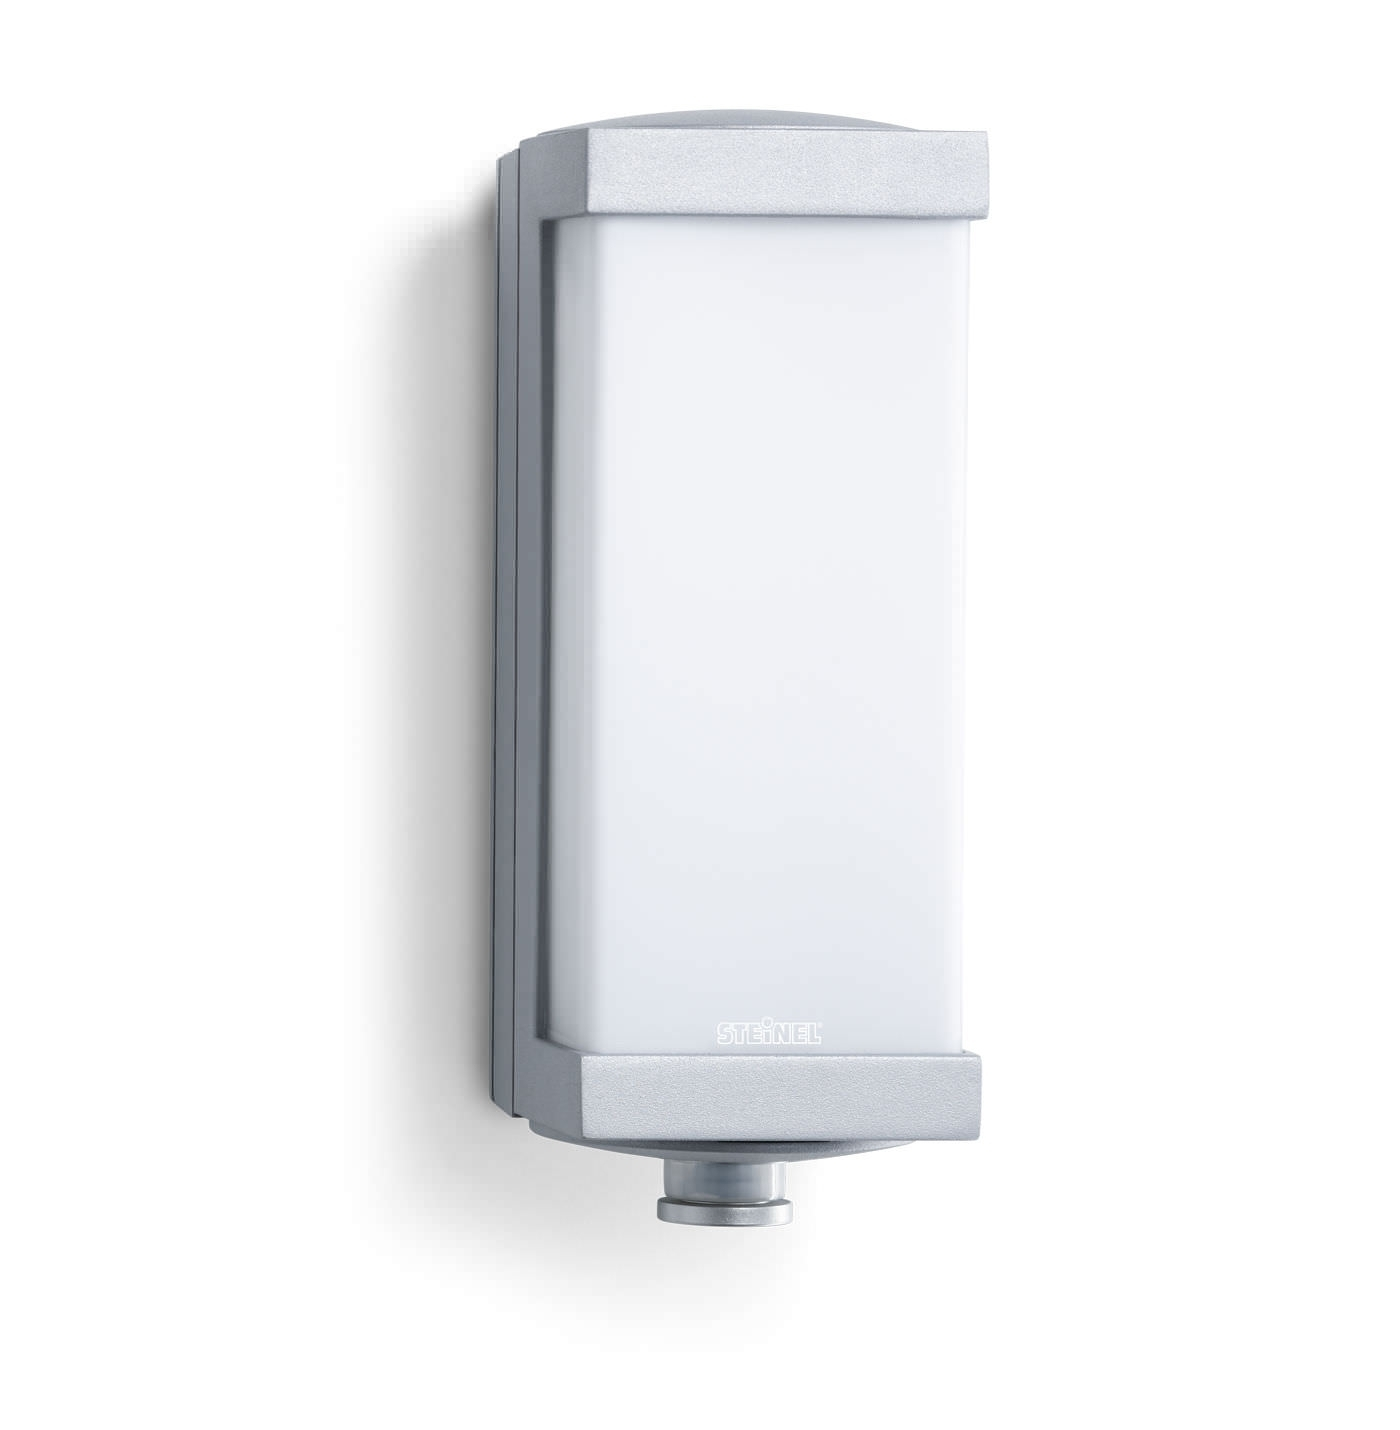 Wall Light: Popular Outdoor Wall Lights With Motion Sensor As Well With Regard To Eglo Lighting Sidney Outdoor Wall Lights With Motion Sensor (#15 of 15)